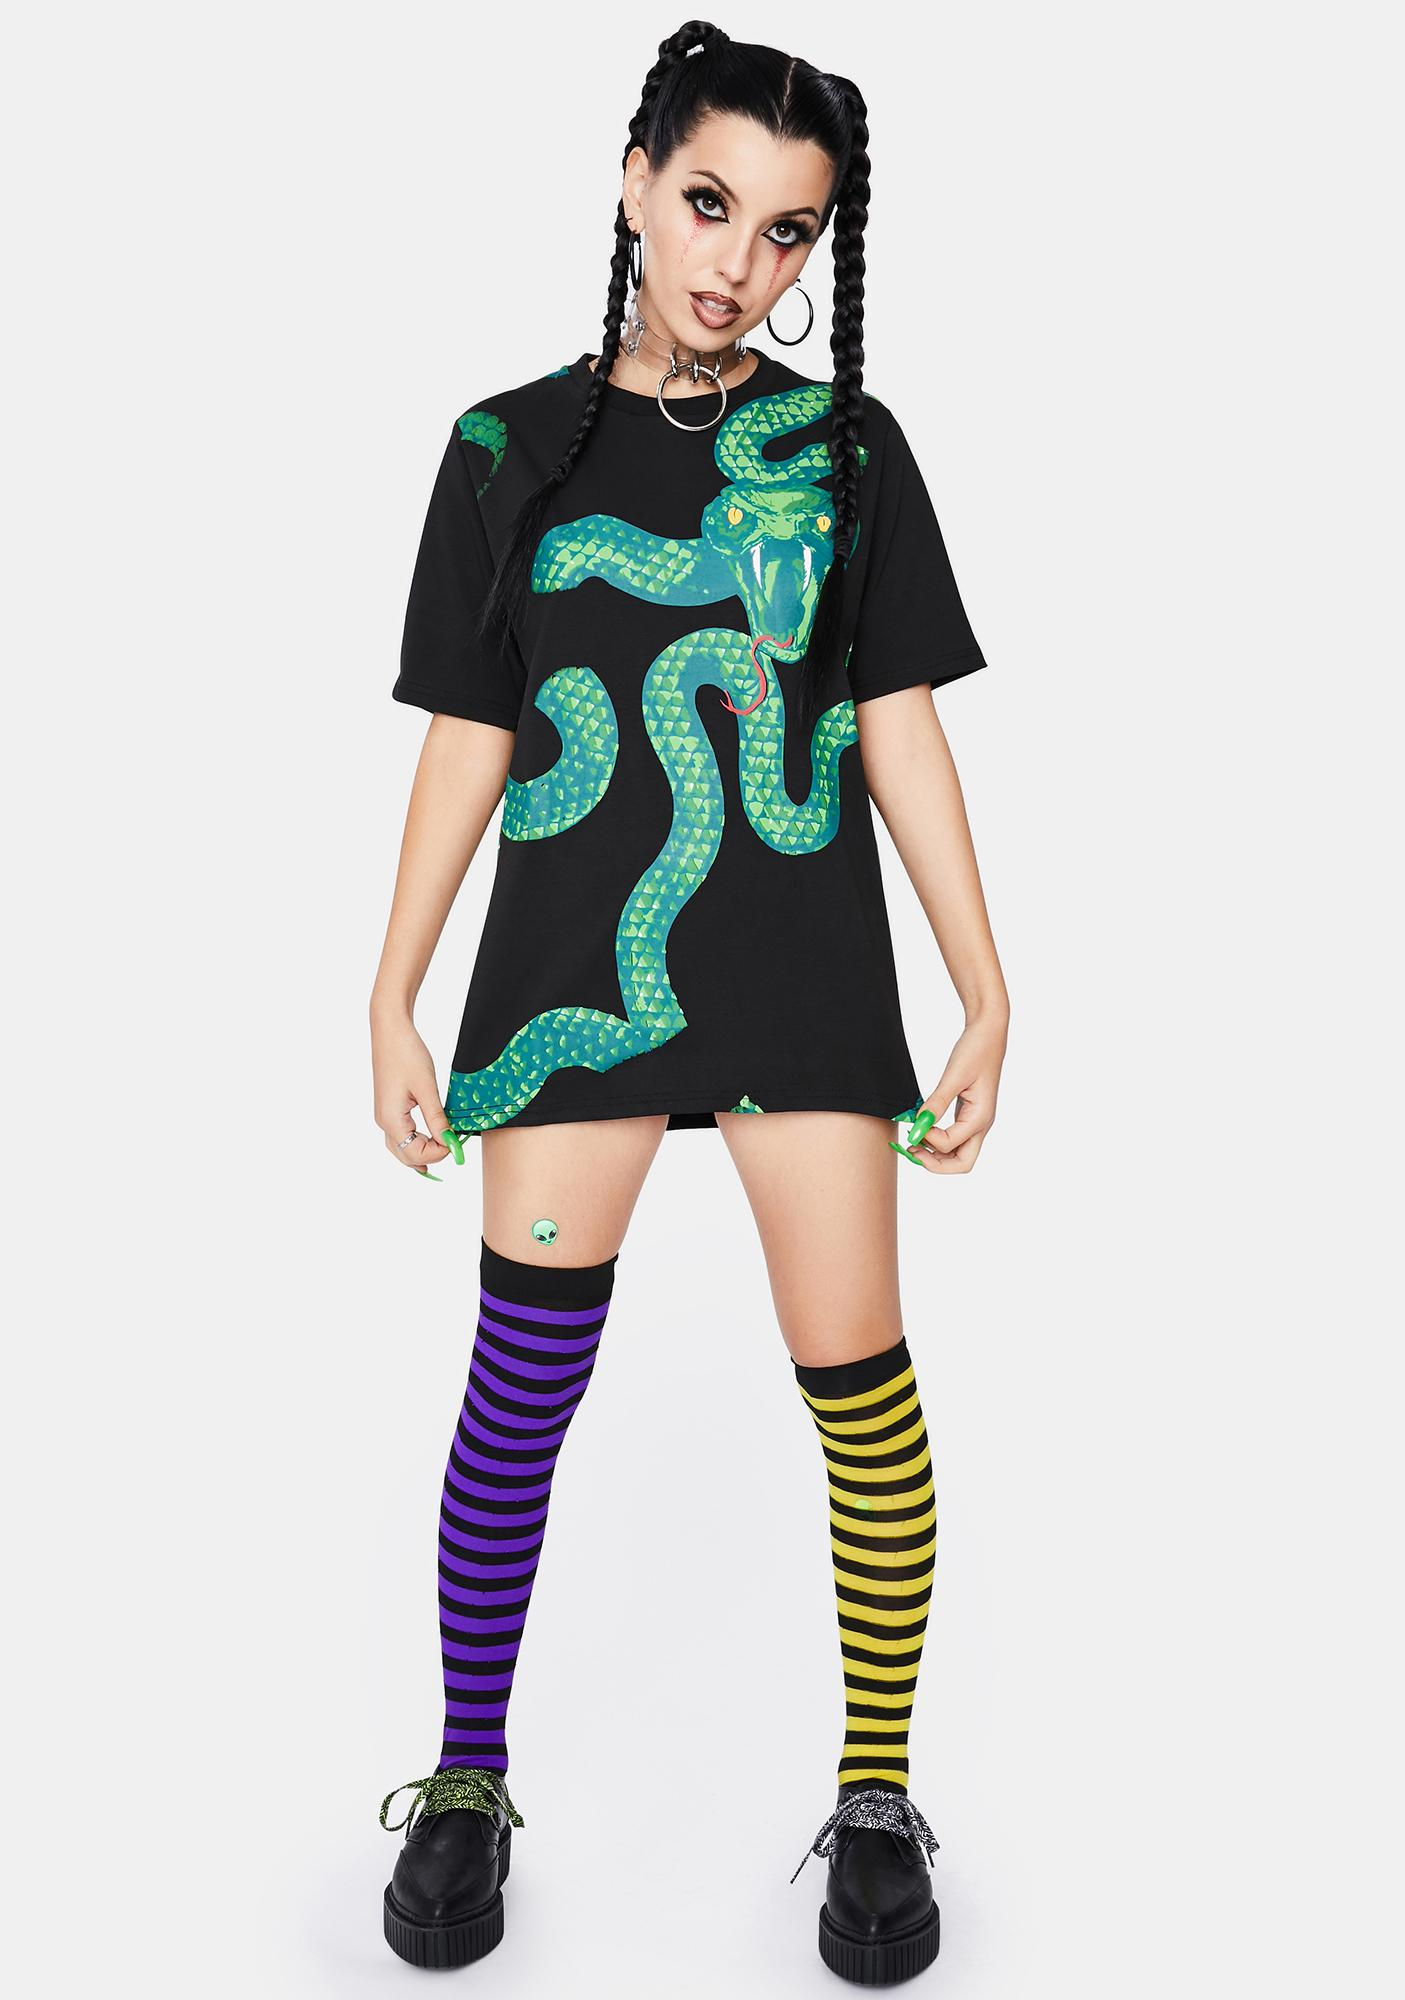 Dr. Faust Green Snake God Graphic Tee